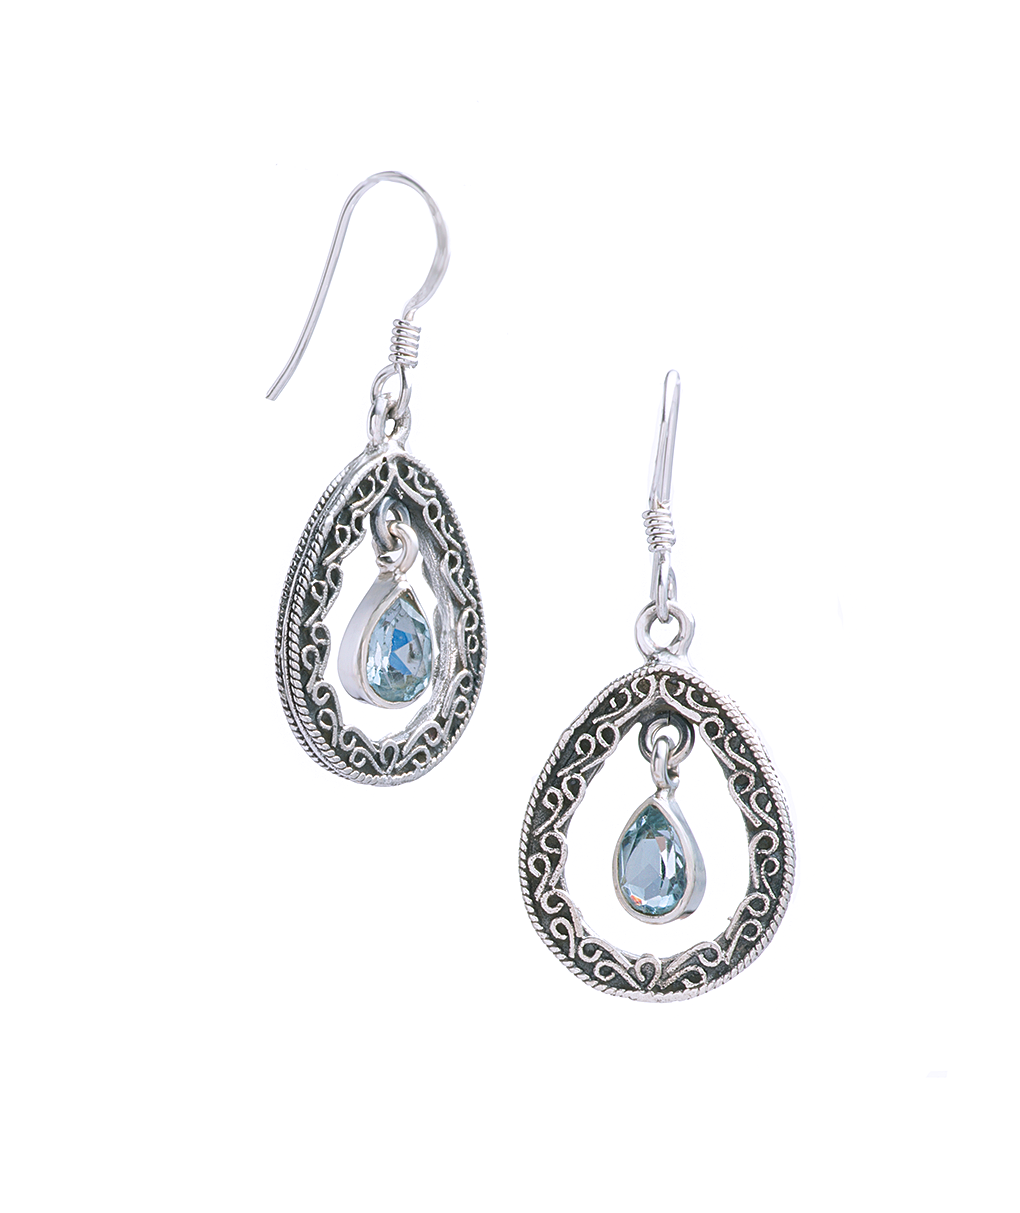 Aquamarine Drop Earrings in Sterling Silver